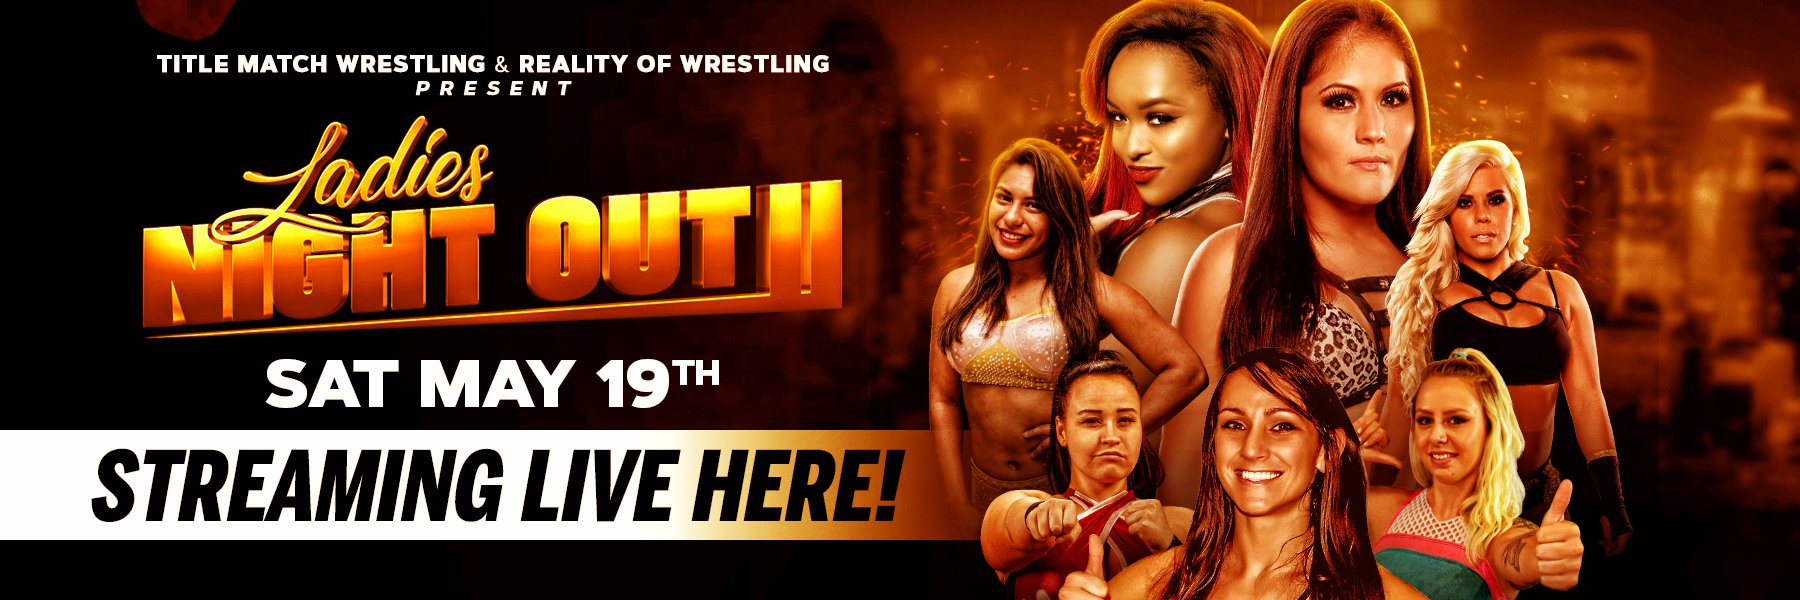 Coming May 19th - Ladies Night Out II feat: Ivelisse vs Kiera Hogan!